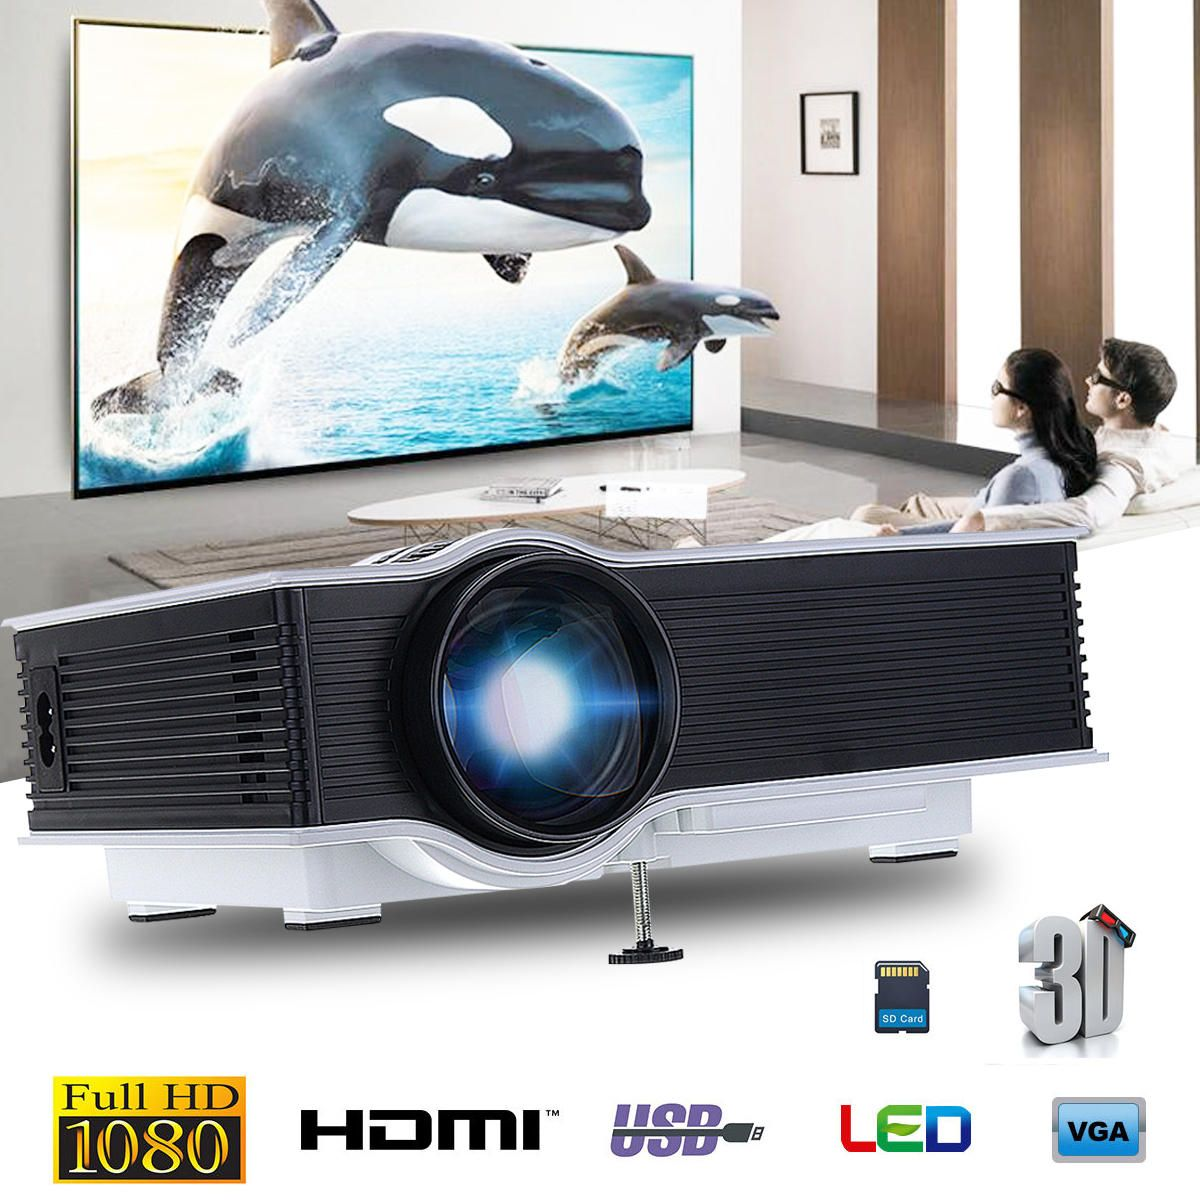 GIGXON G40 1200 LM 1080P Led Projector Full HD Compatible Home Portable Mini Projector HDMI